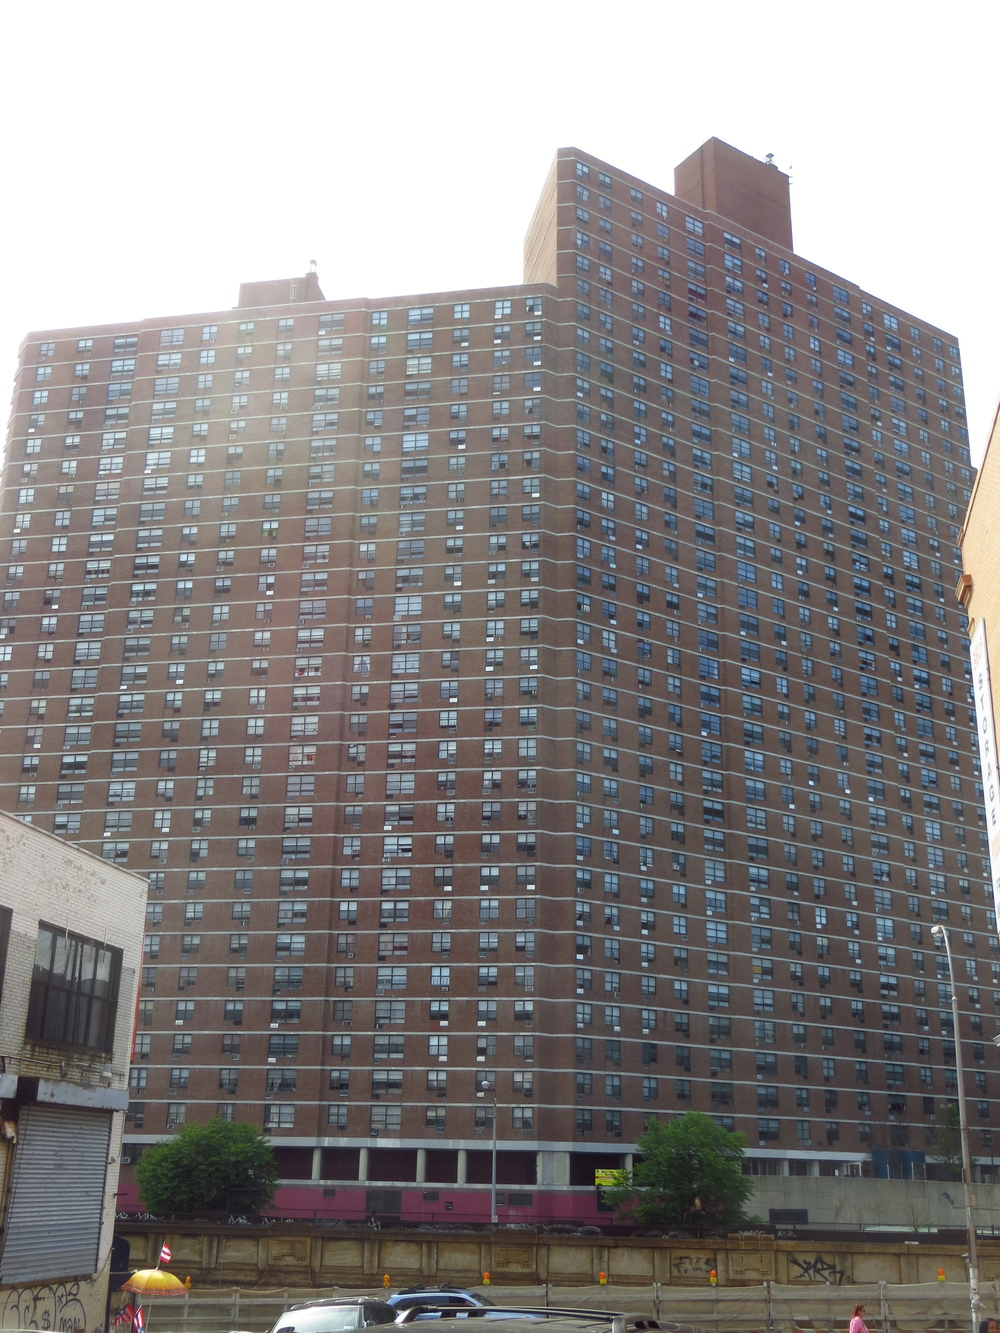 Riverside Park Community apartment complex